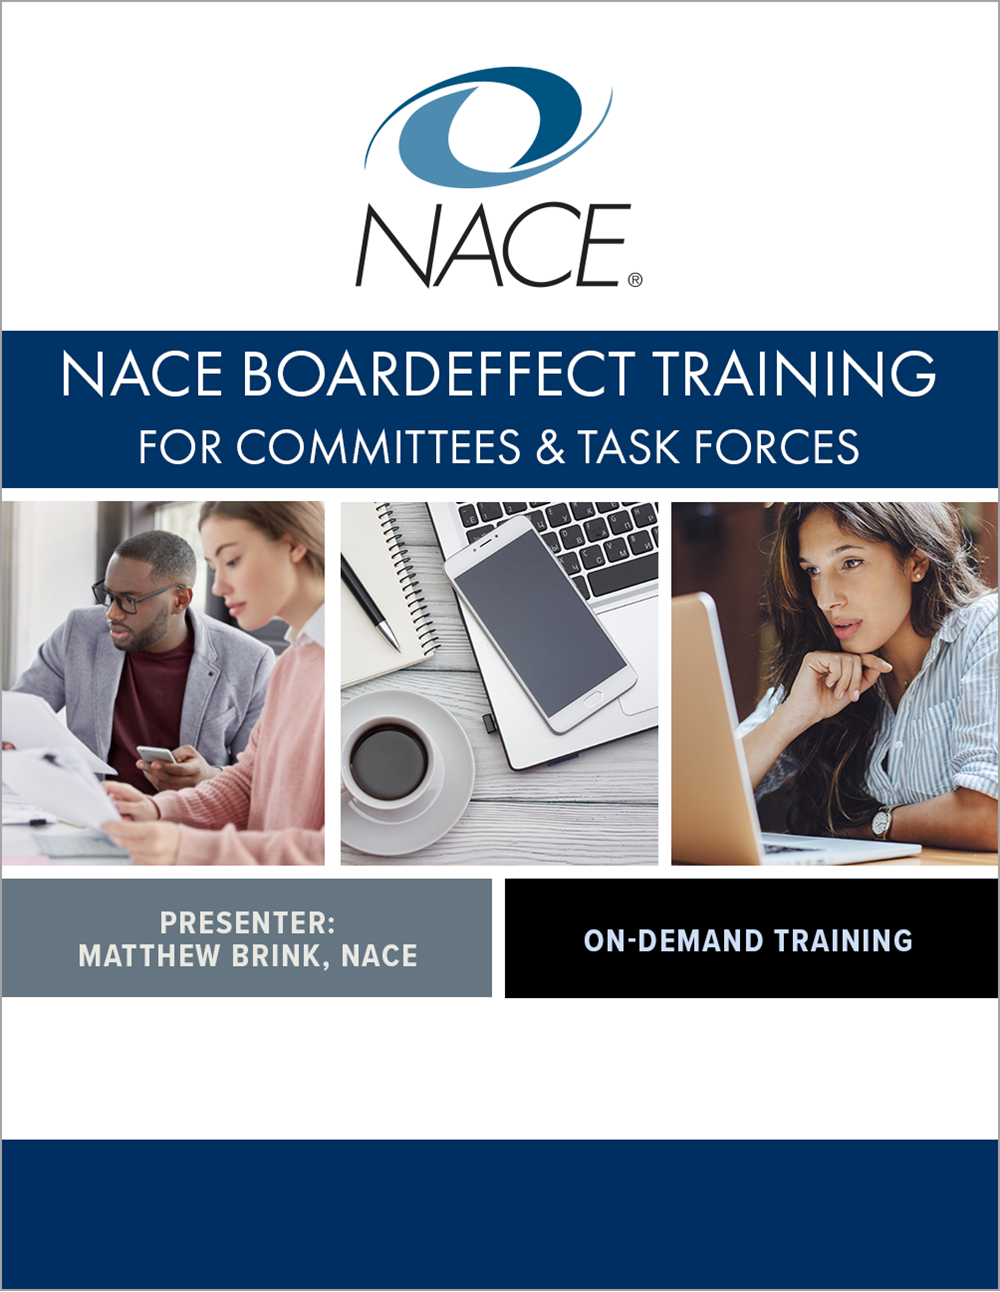 BoardEffect Training for Committees & Task Forces